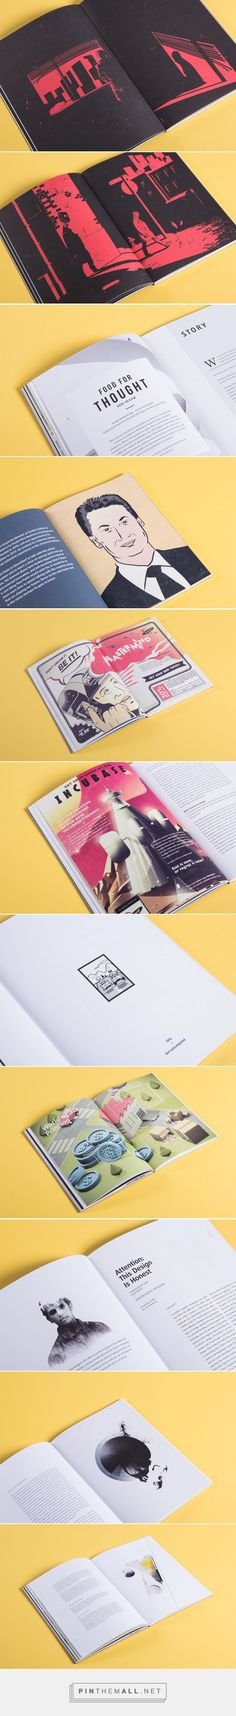 now.03 // Ltd. Edition Book [Startups] on Behance - created via https://pinthemall.net